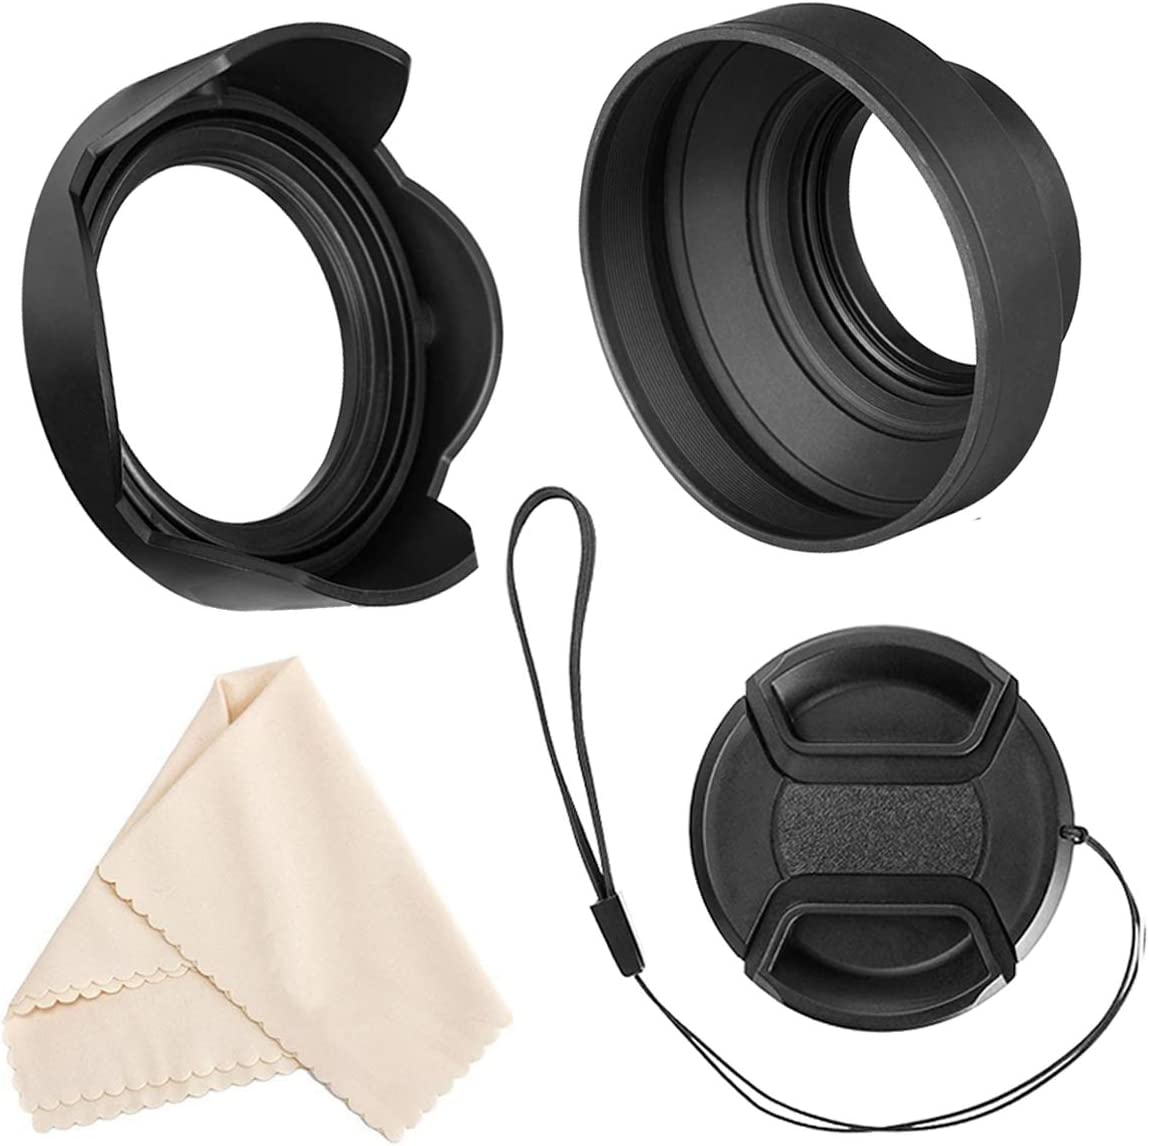 Veatree 72mm Lens Hood Set, Collapsible Rubber Lens Hood with Filter Thread + Reversible Tulip Flower Lens Hood + Center Pinch Lens Cap + Microfiber Lens Cleaning Cloth